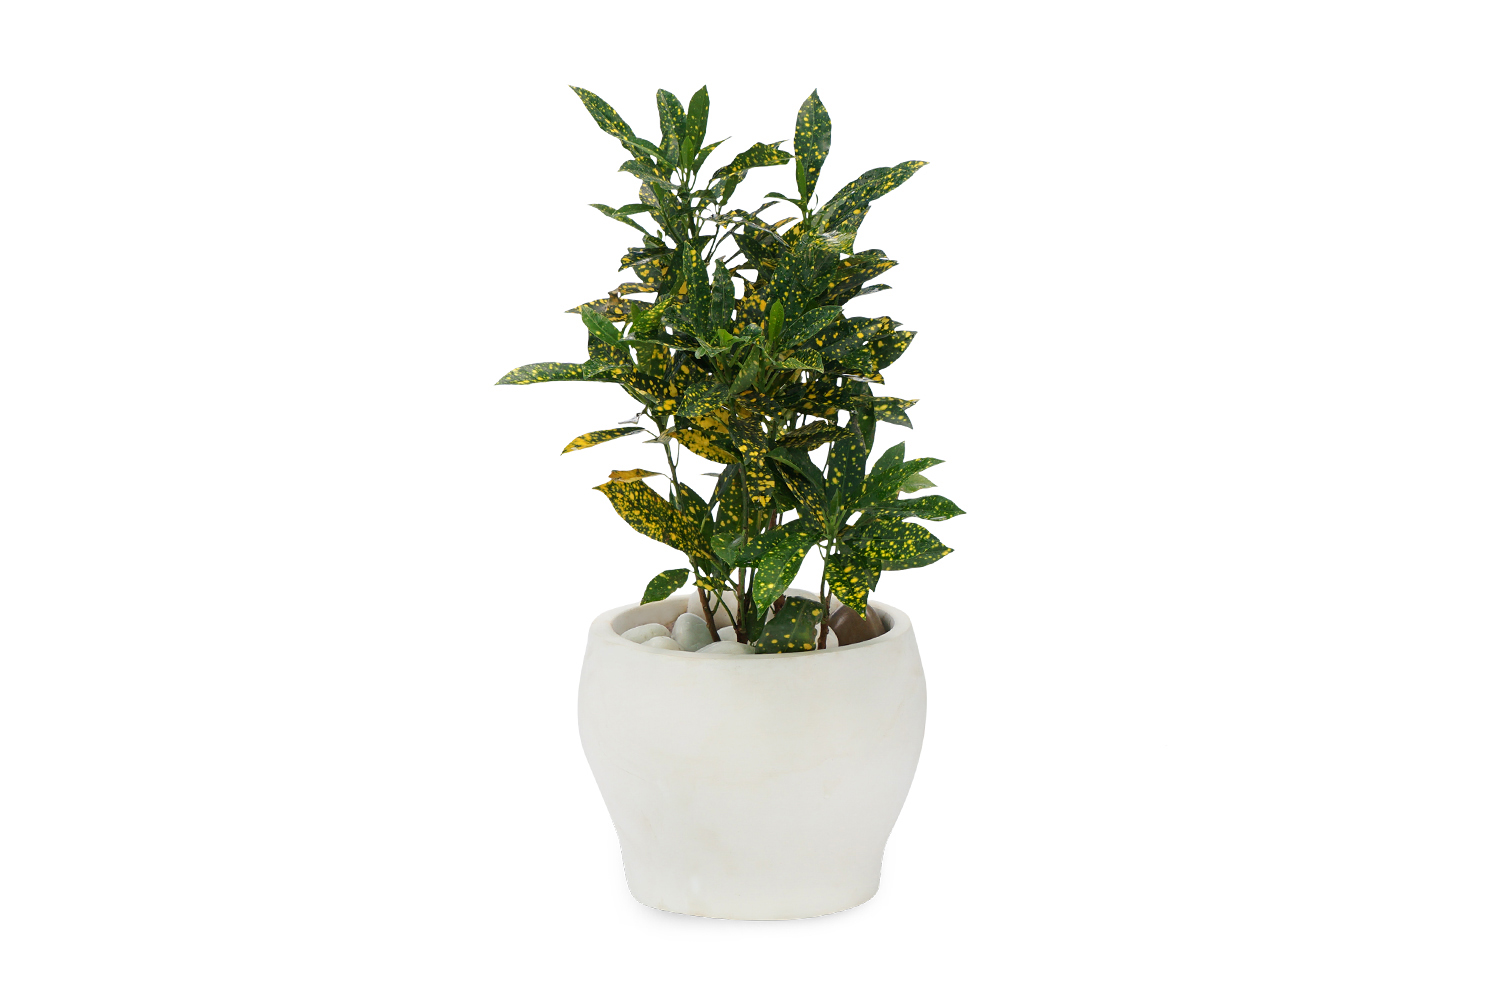 Buy Croton Golden Dust Plants , White Pots and seeds in Delhi NCR by the best online nursery shop Greendecor.